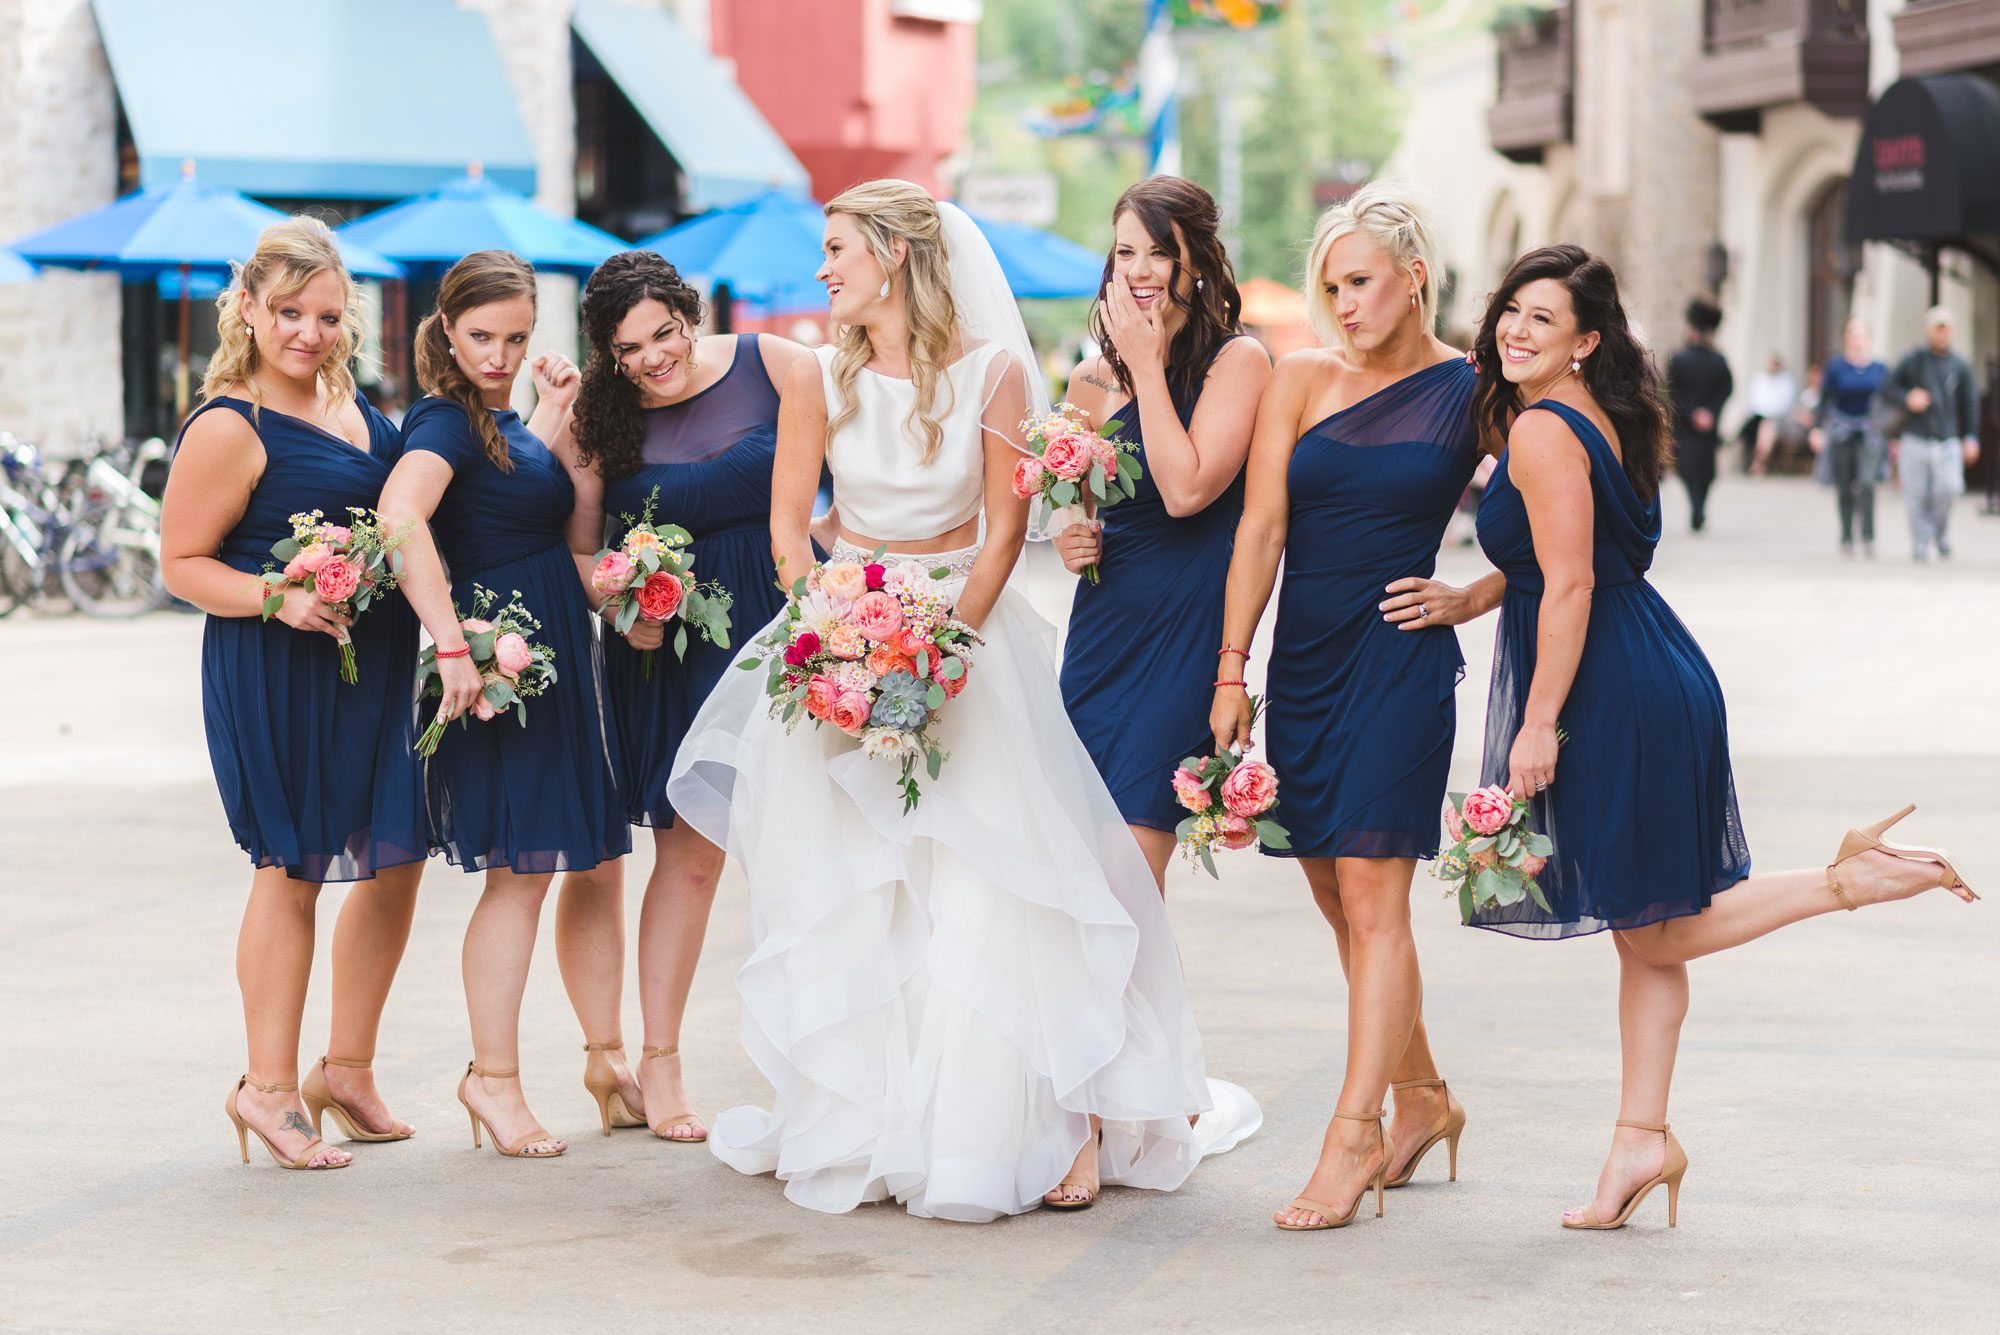 Flowers by lace and lilies, wedding flowers, bridal party, bride tribe, bridesmaids, vail wedding, navy dresses, navy gowns, bridesmaid gowns, pink wedding flowers